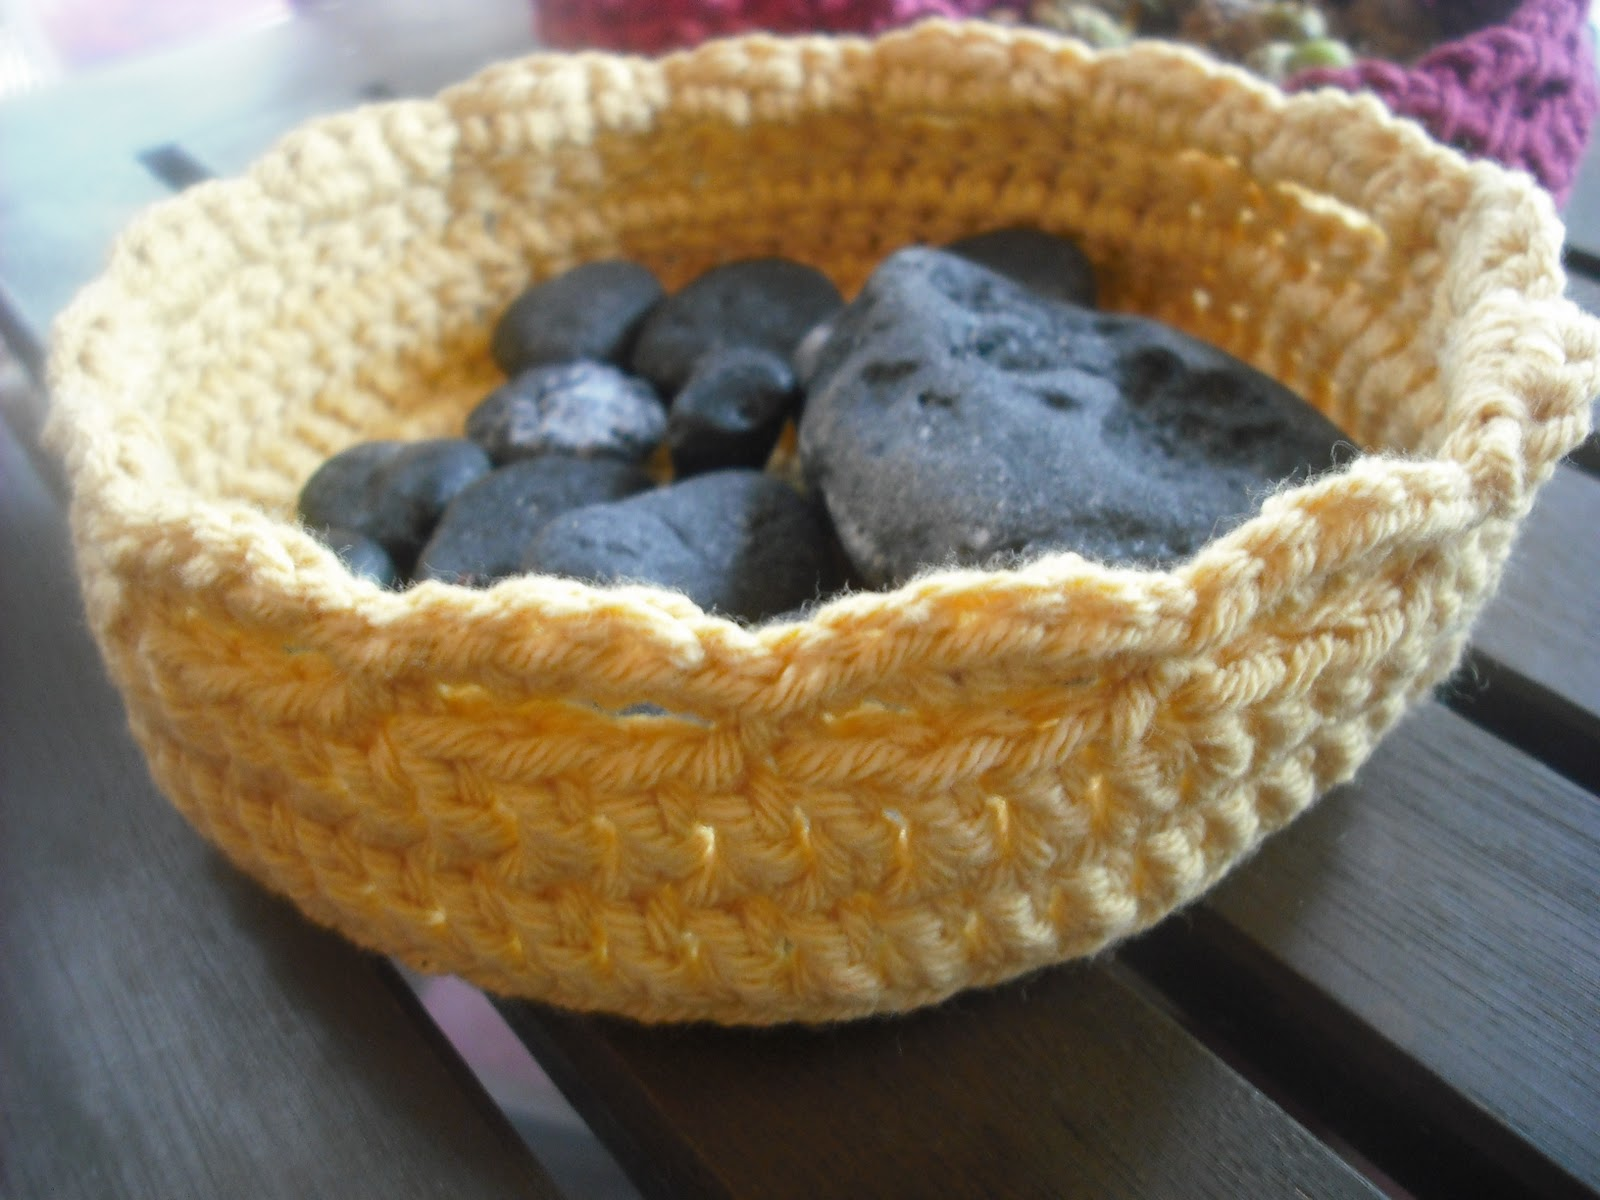 Purple Chair Crochet: Nesting Bowl Trio - Free!